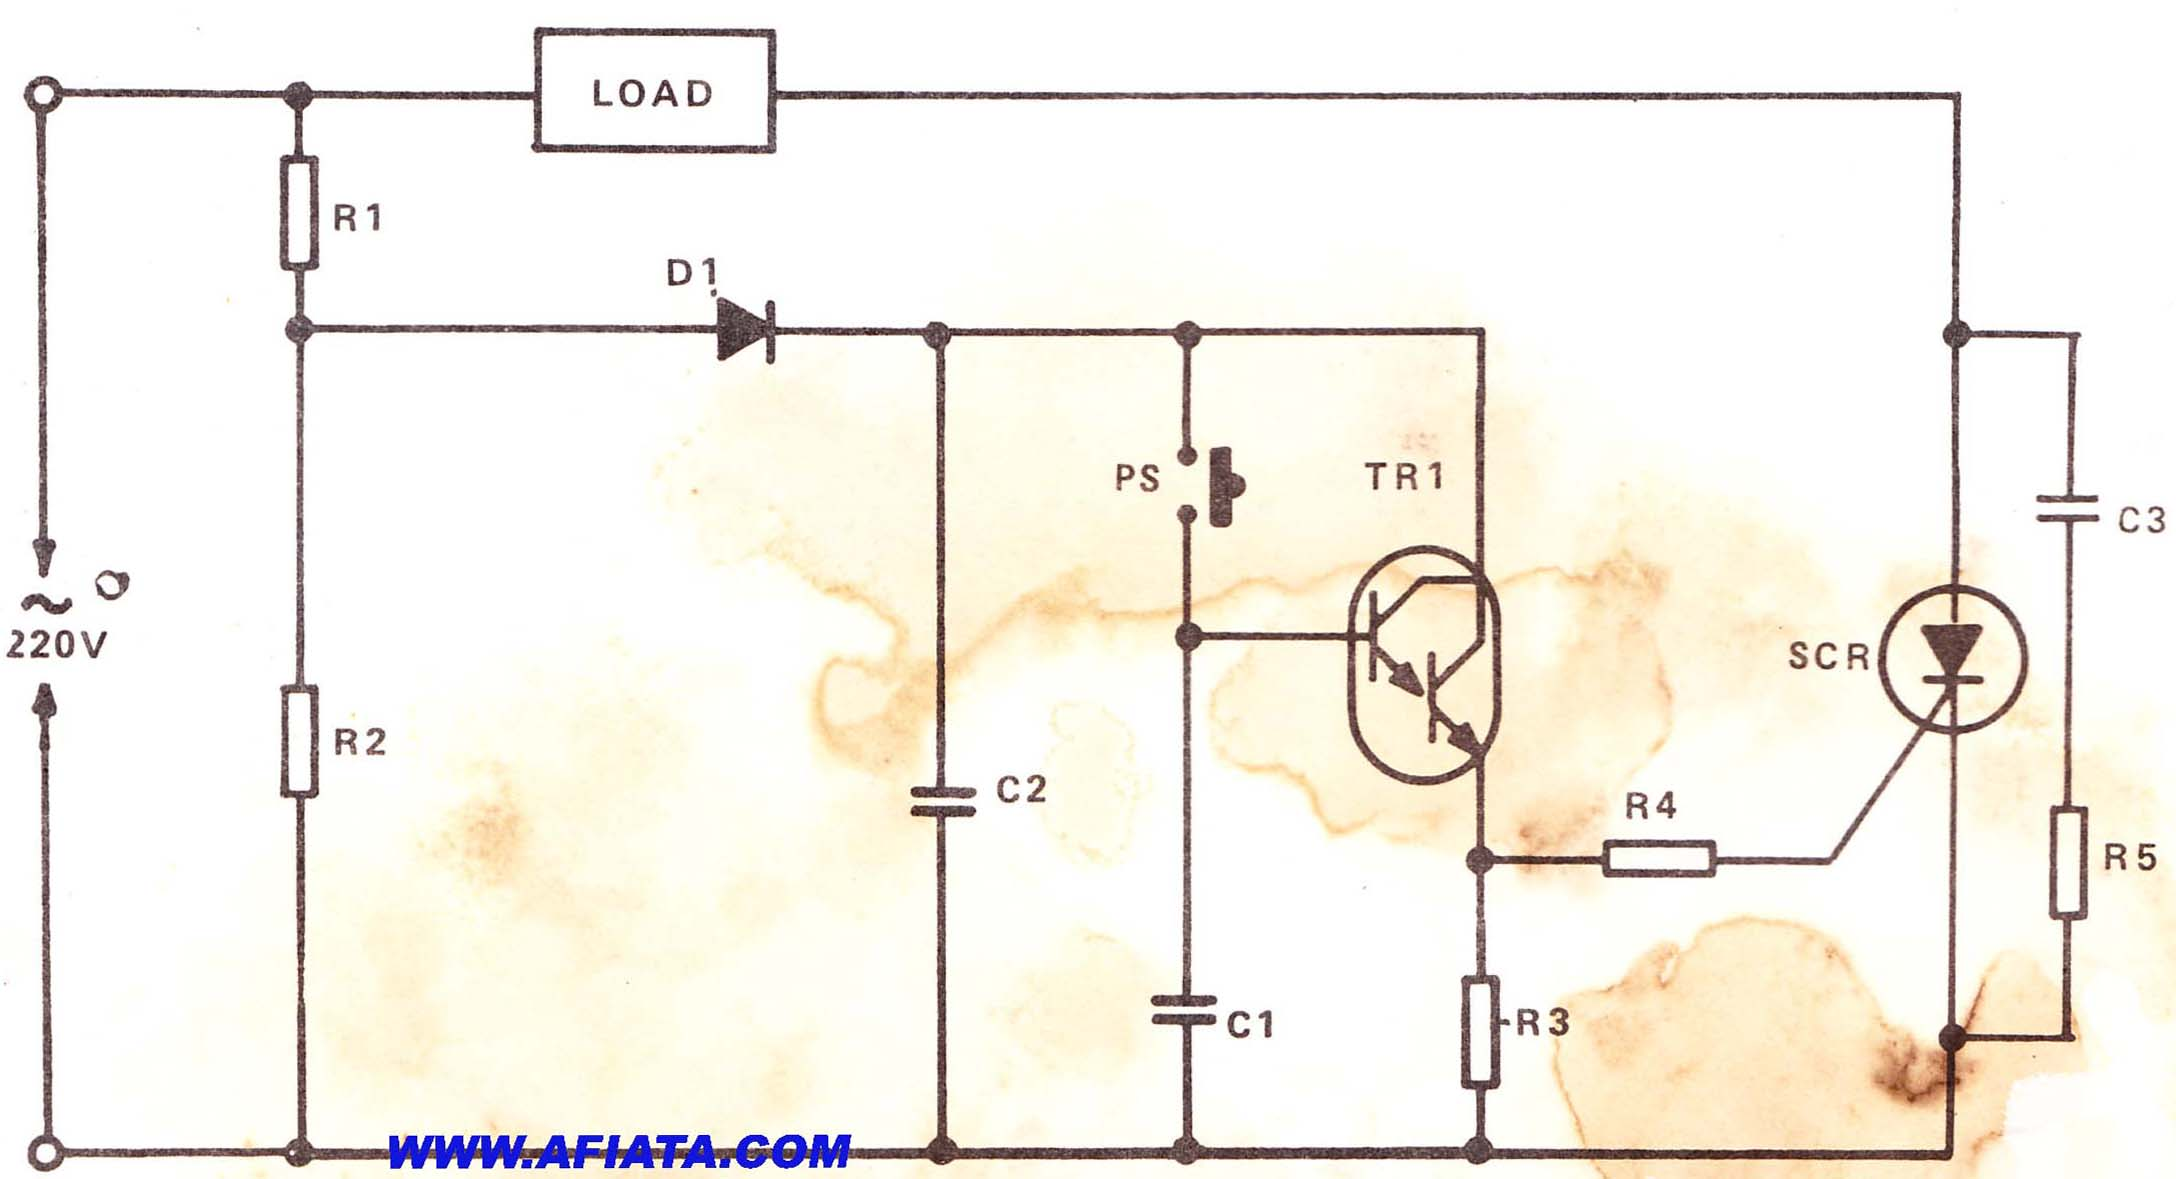 Simple Siren Circuit Everything About Wiring Diagram Electronic Schematic Scr And Layout Manual